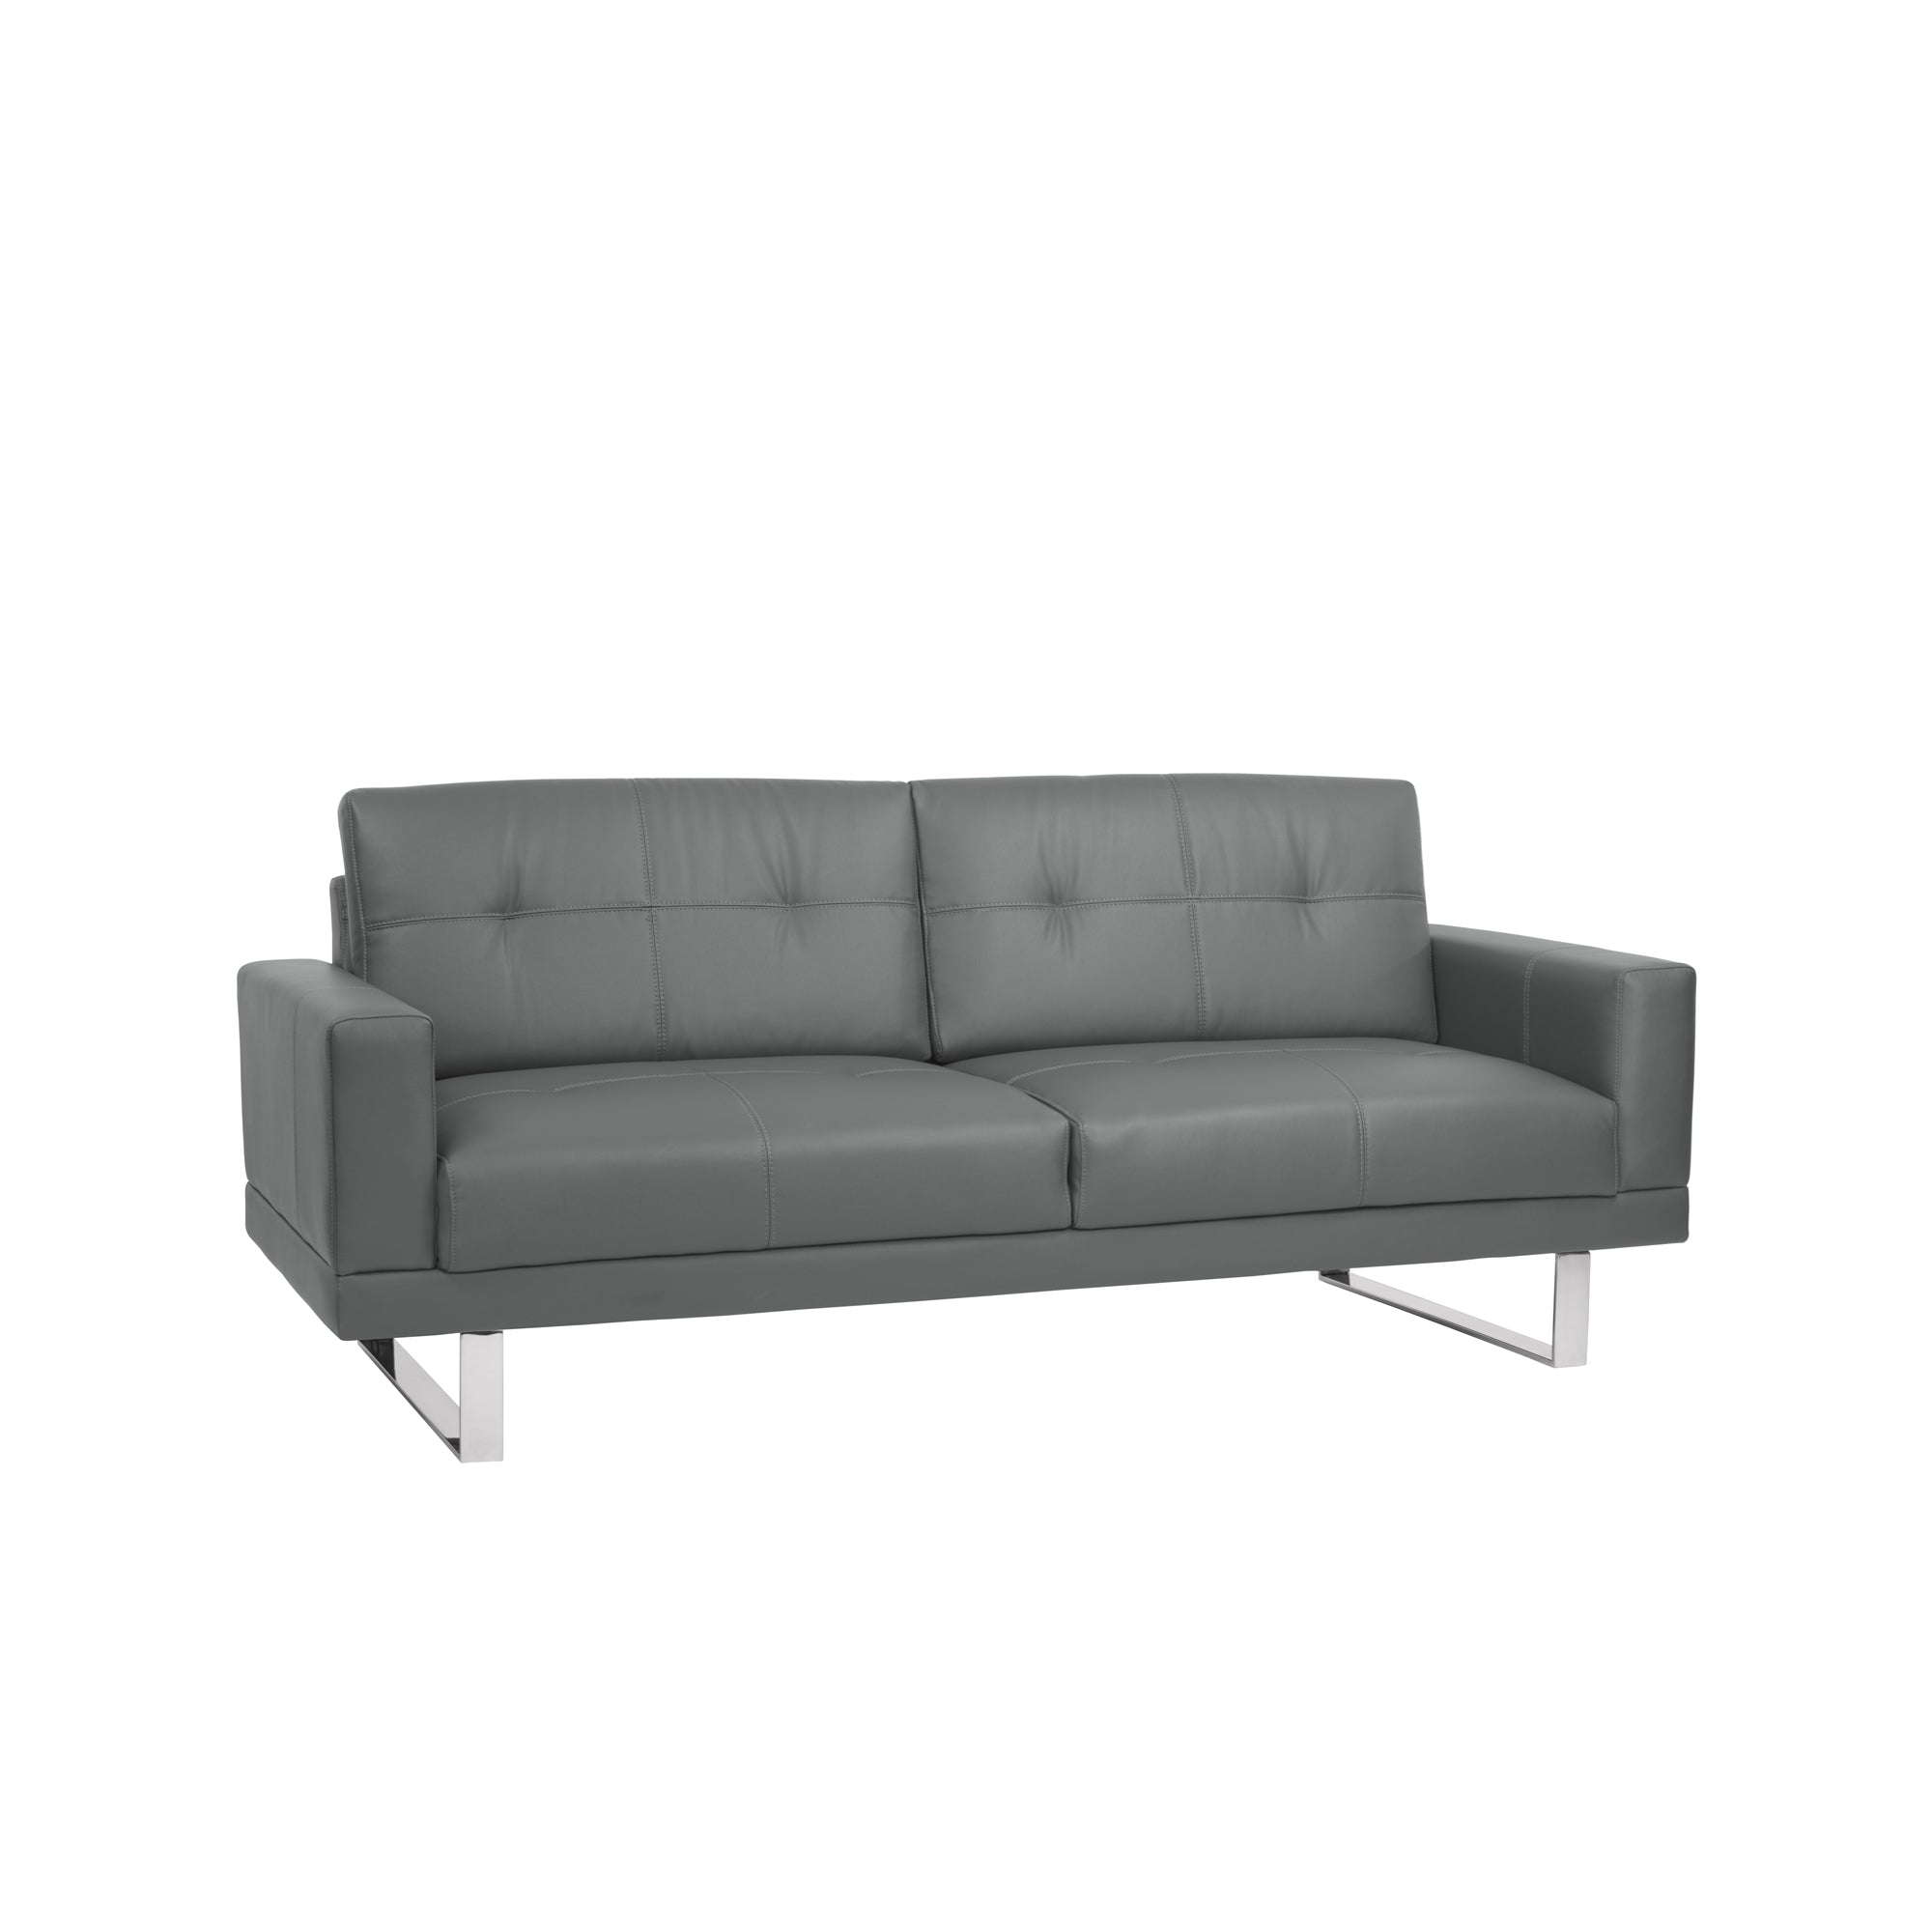 Armen Living Sofa Gray Tufted Faux Leather Chrome Legs Lincoln